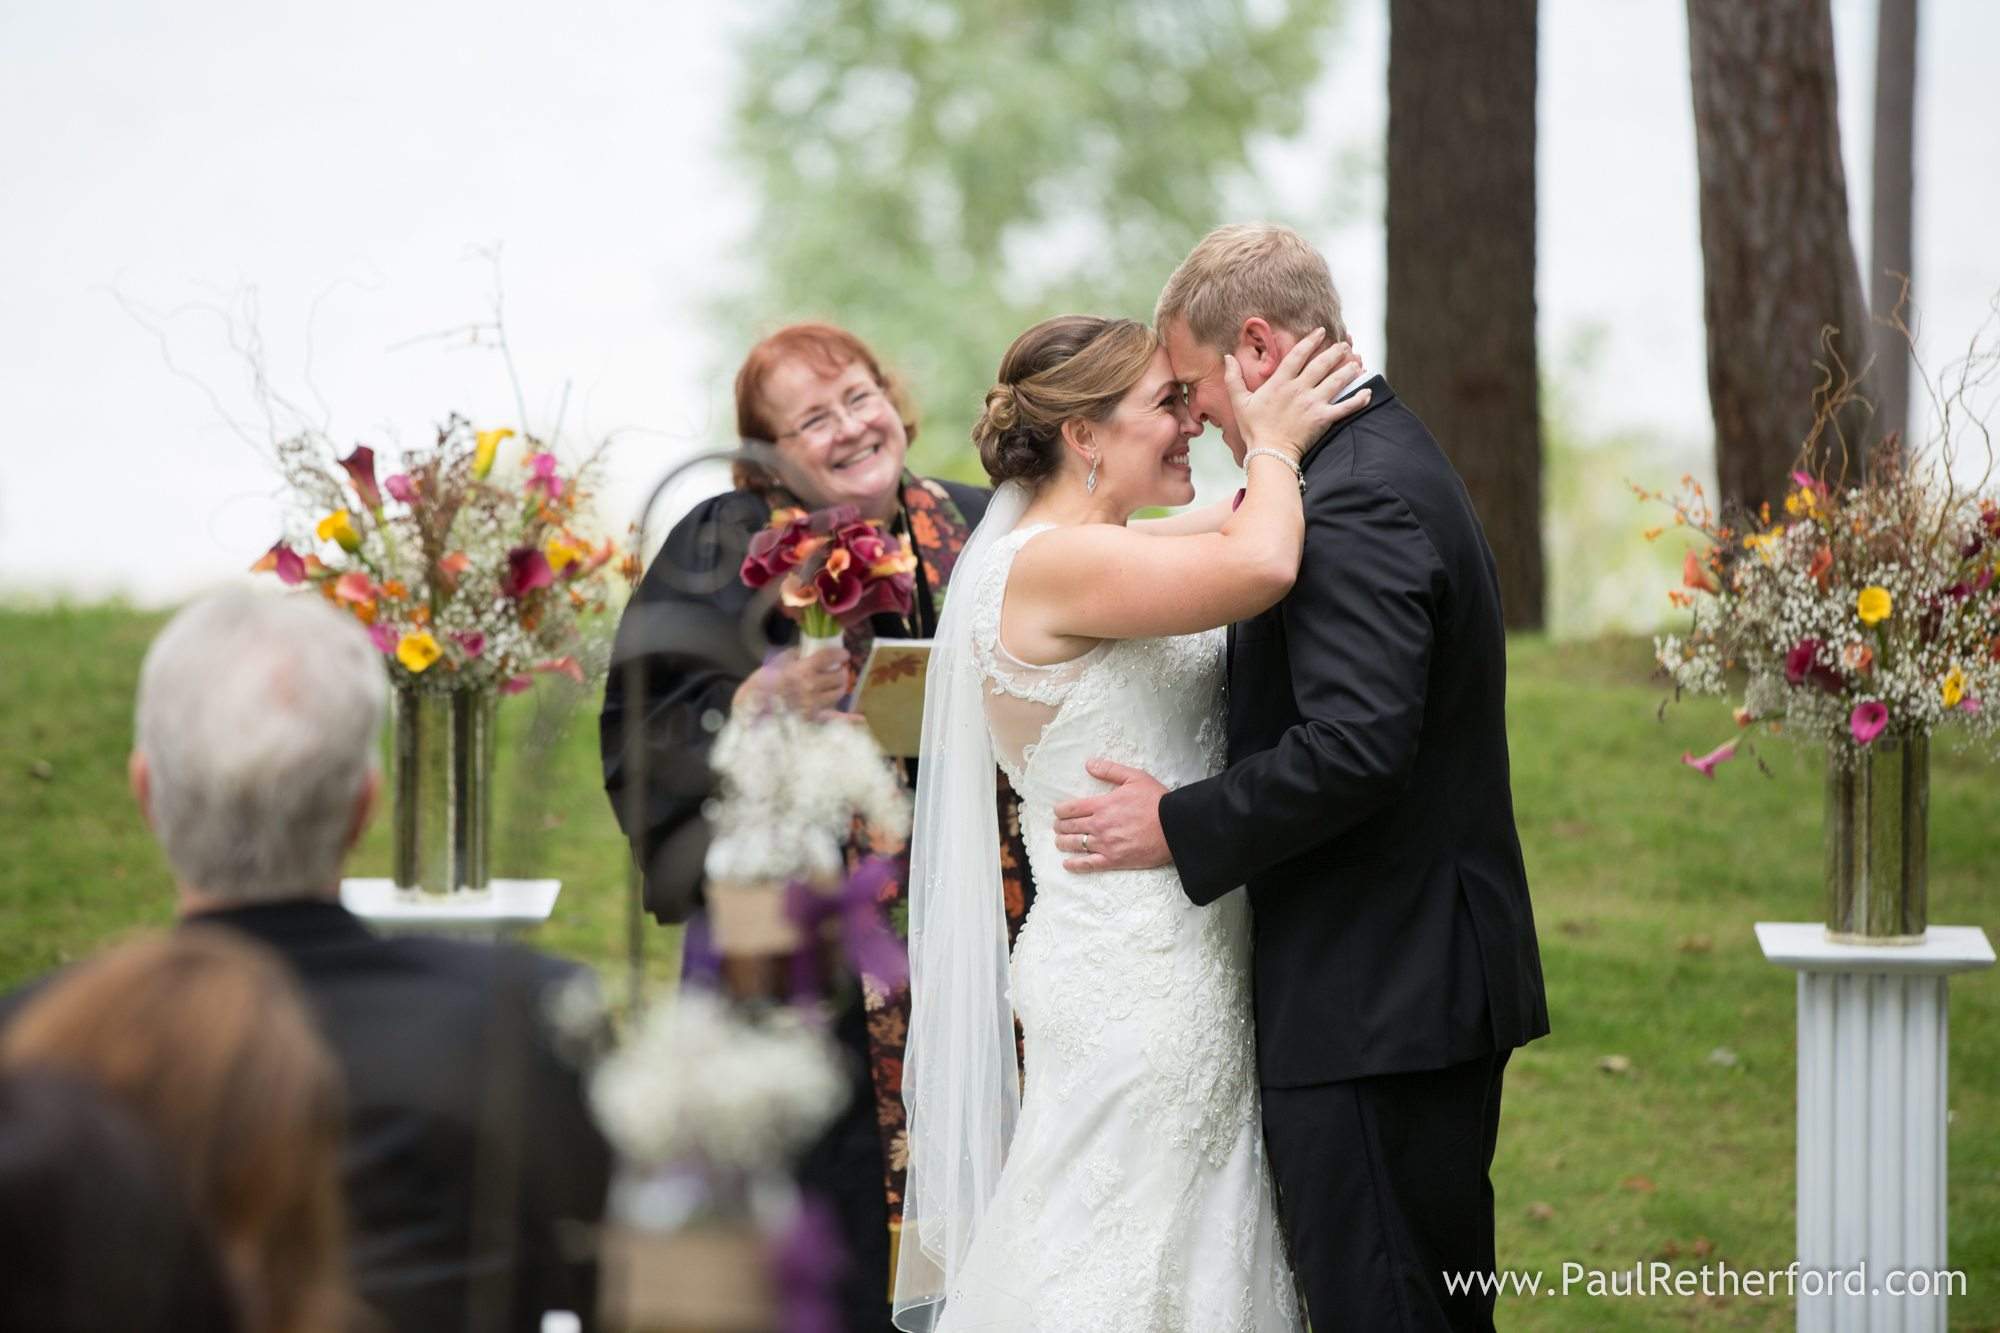 WEDDING REVIEWS Testimonials Paul Retherford Photography